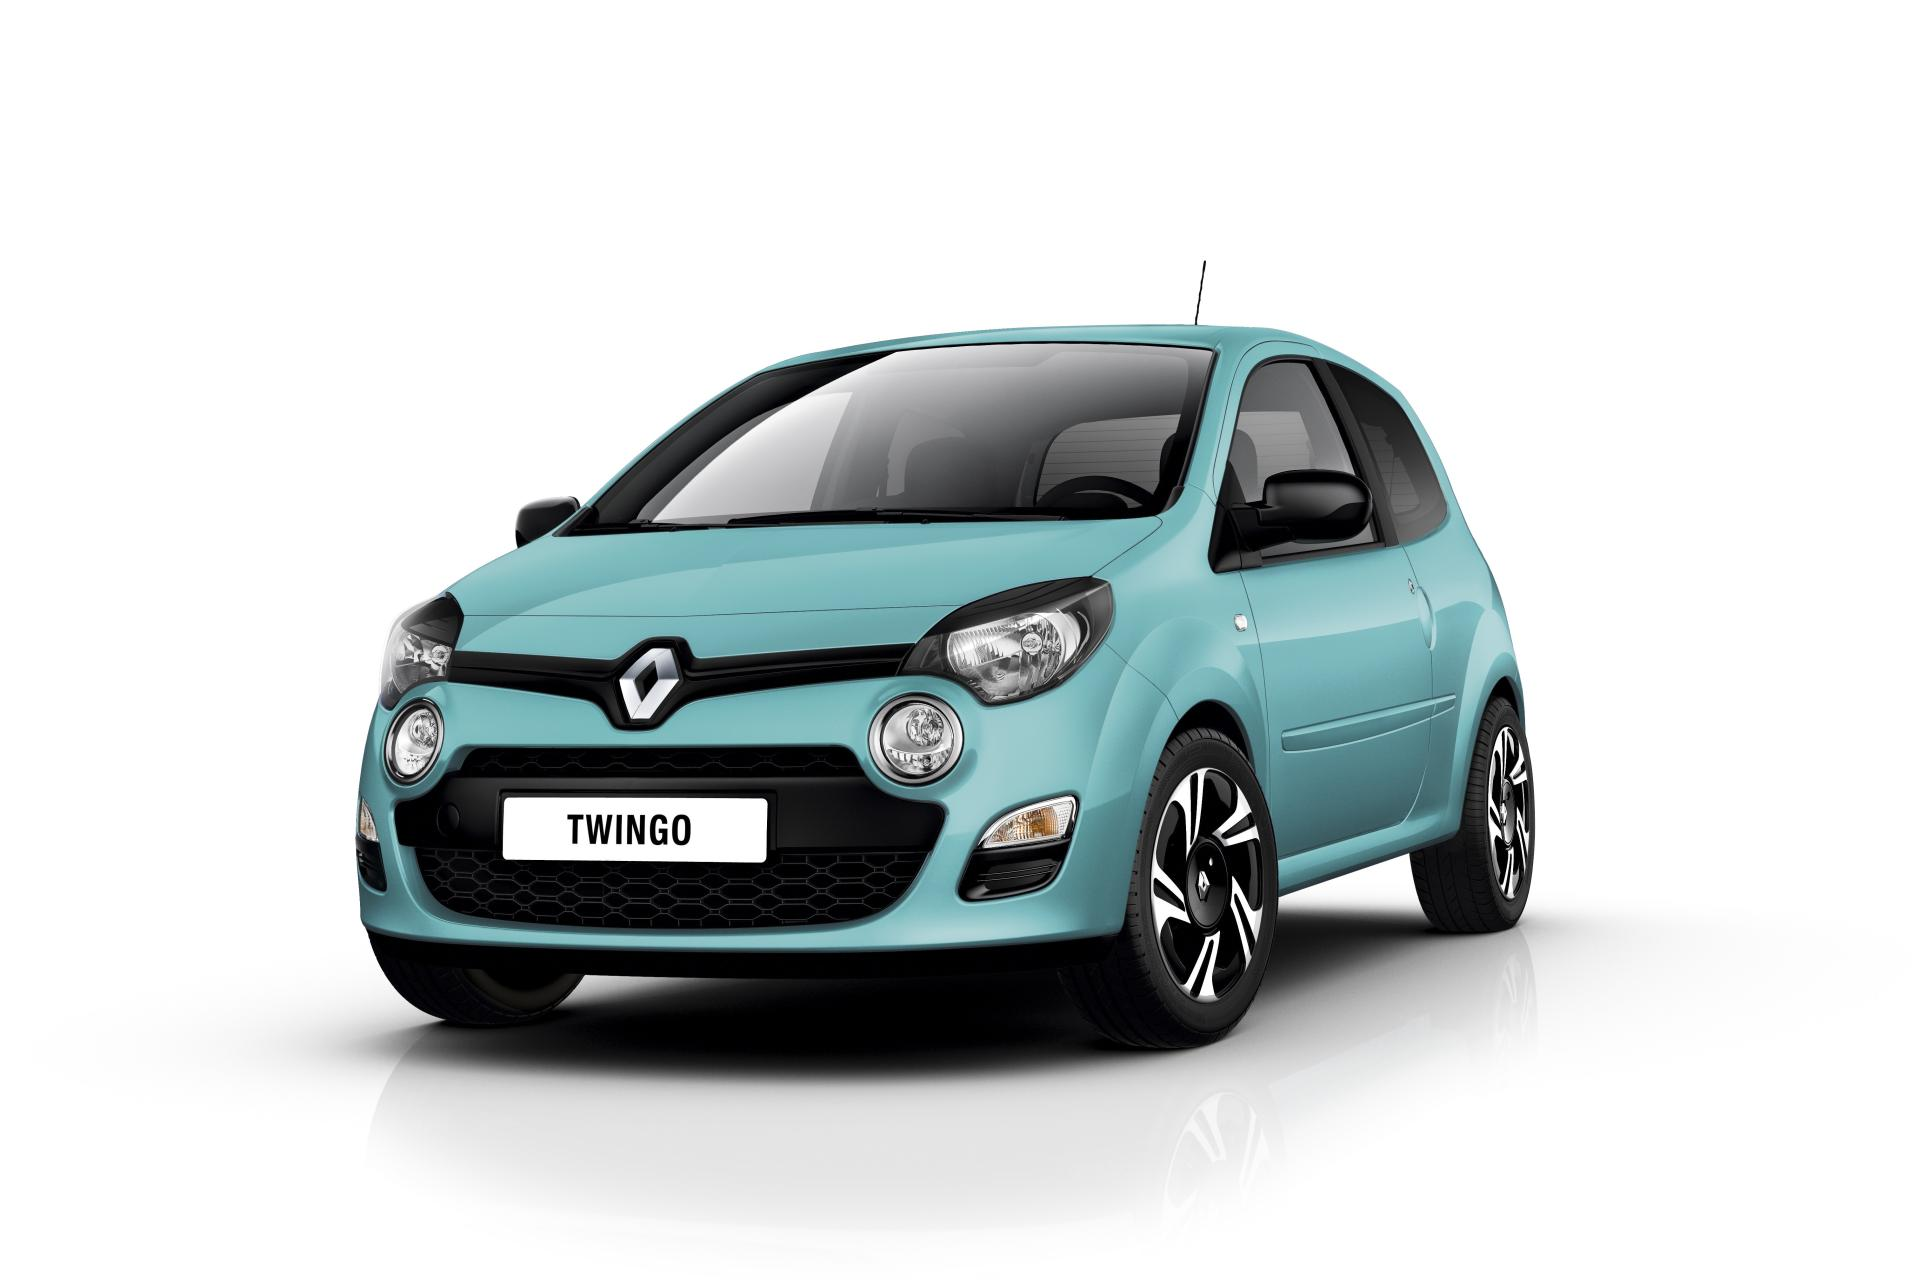 2012 renault twingo technical specifications and data engine dimensions and mechanical details. Black Bedroom Furniture Sets. Home Design Ideas